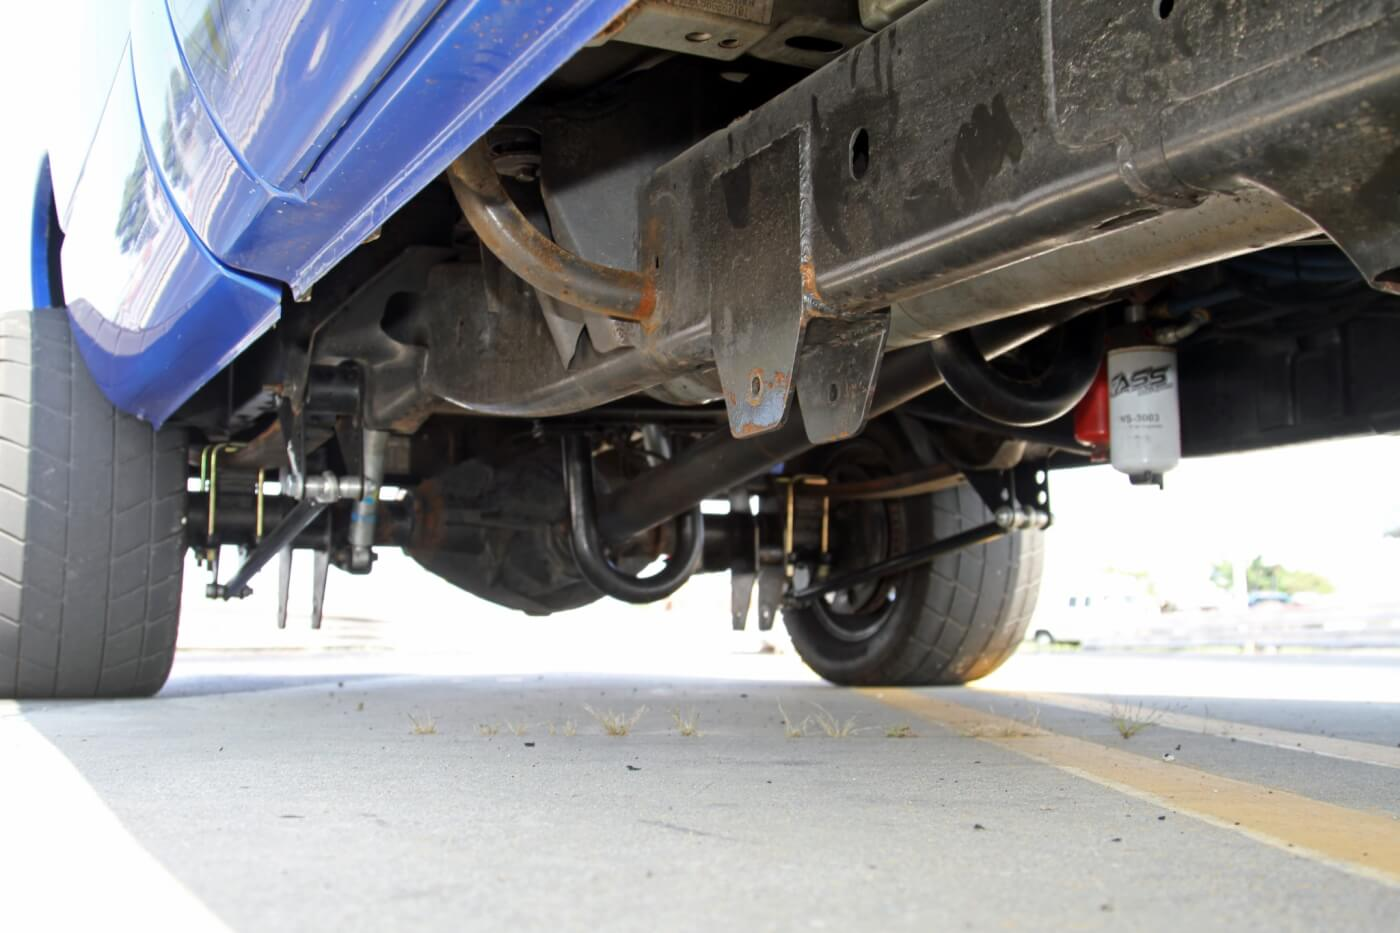 Looking under the truck you can see one connection point of the roll cage to the frame as well as the driveshaft hoops, CalTracs traction bars and FASS fuel pump.